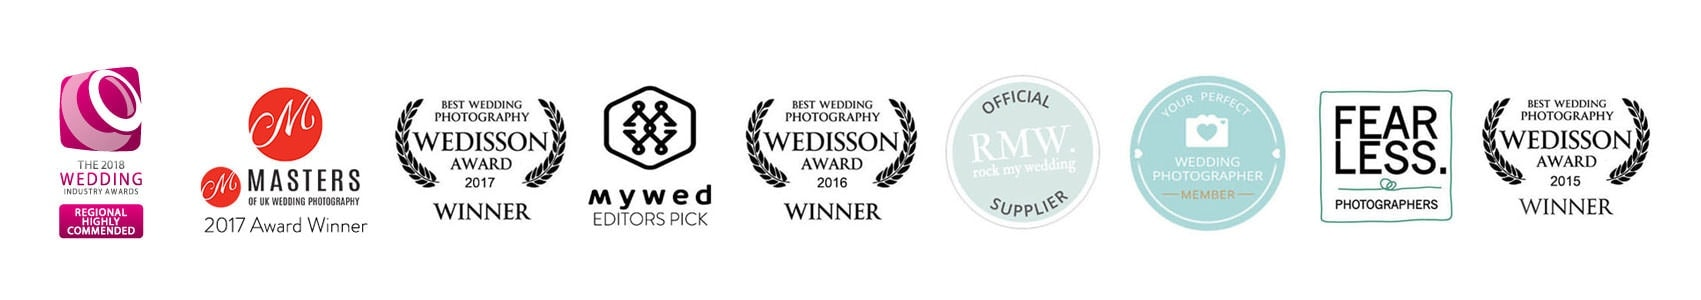 award winning midlands wedding photographer